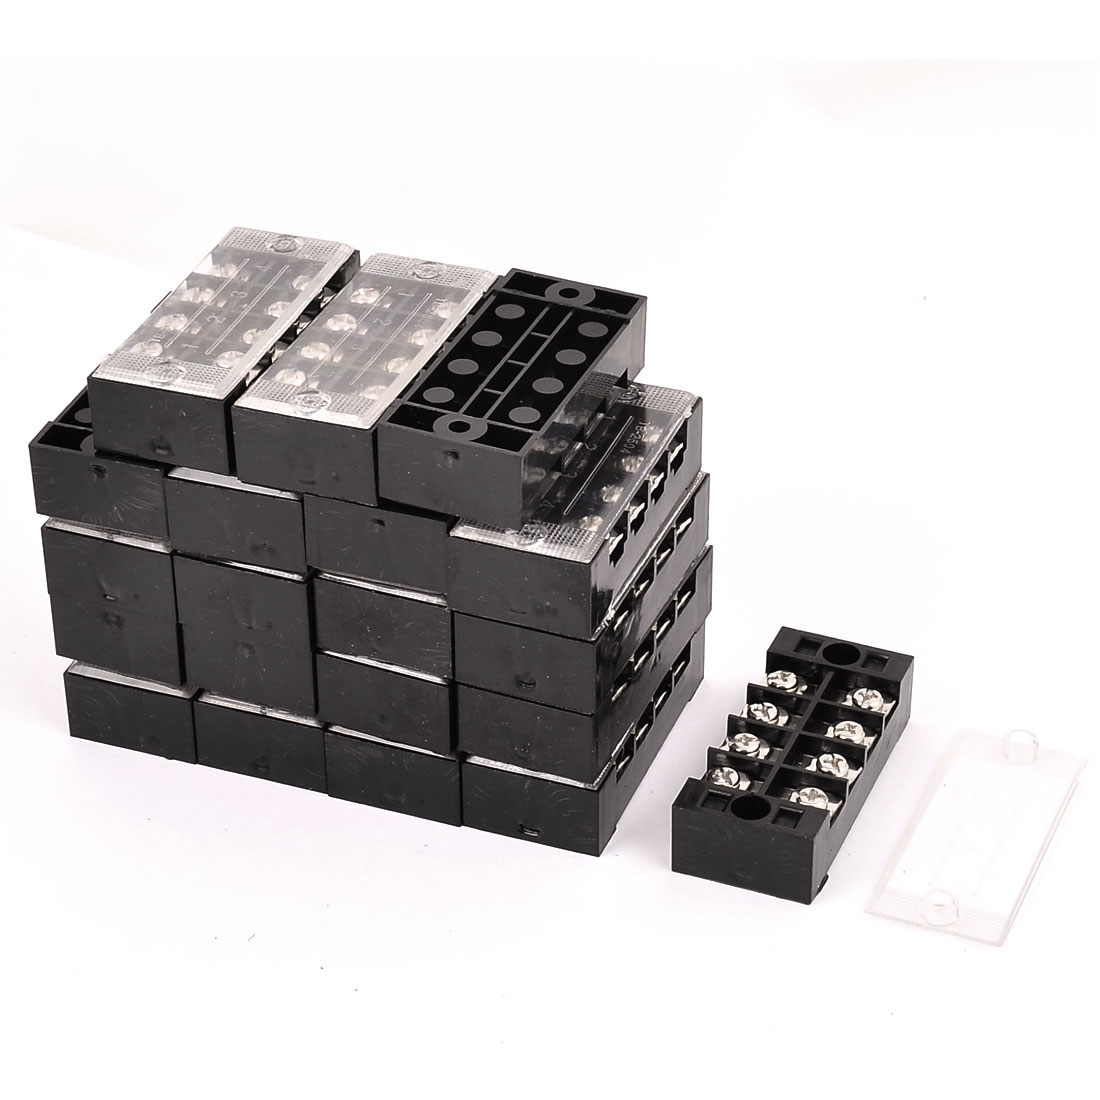 20 Pcs 600V 25A 4P Dual Row Electric Barrier Terminal Block Cable Connector Bar